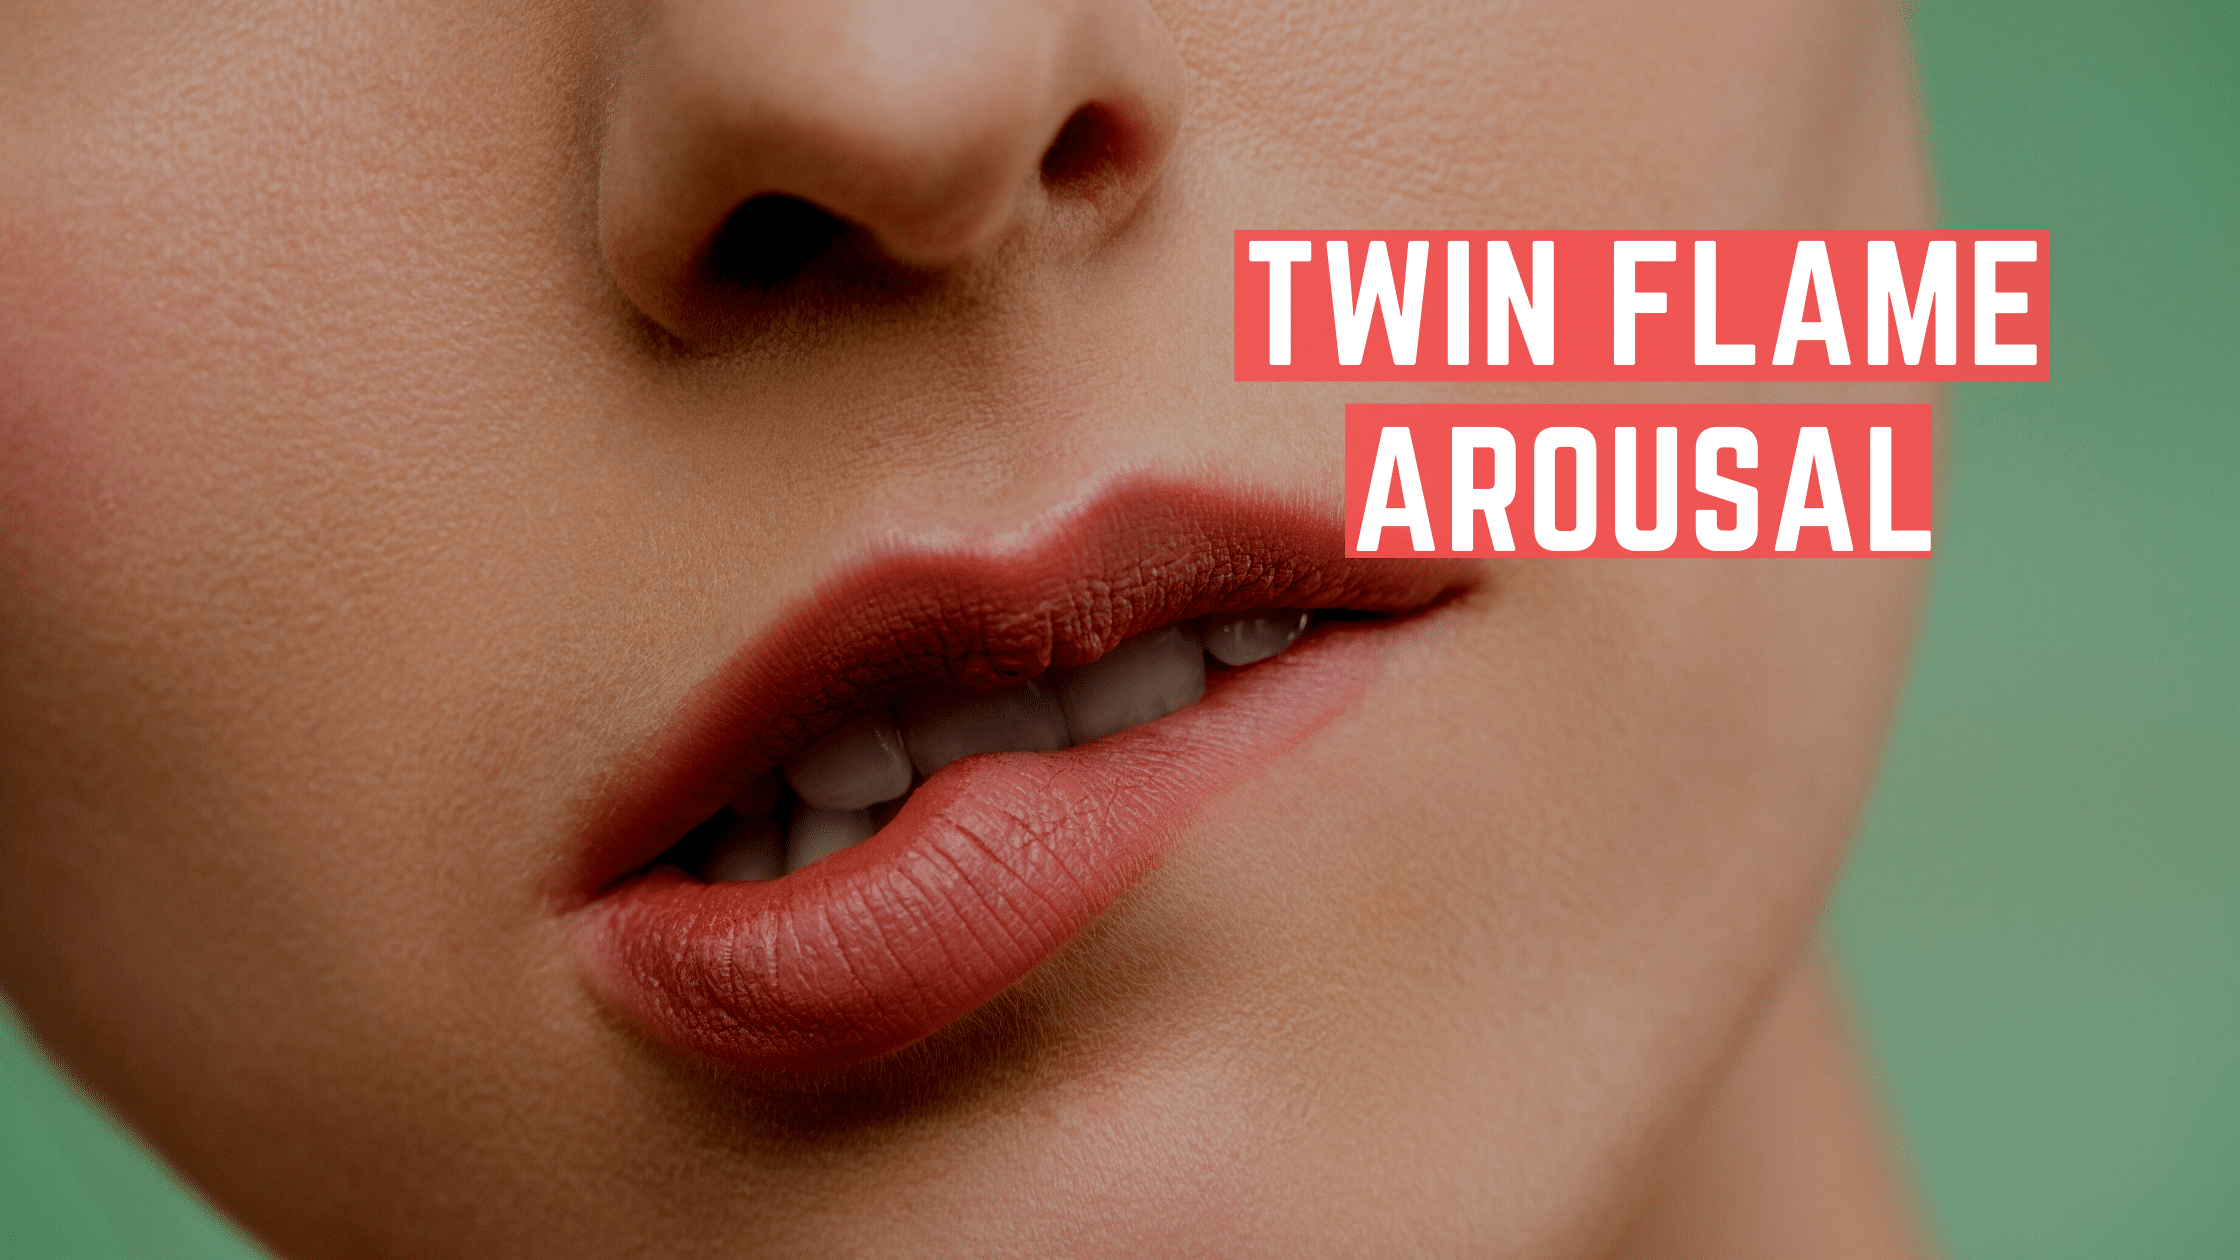 Twin Flame Arousal